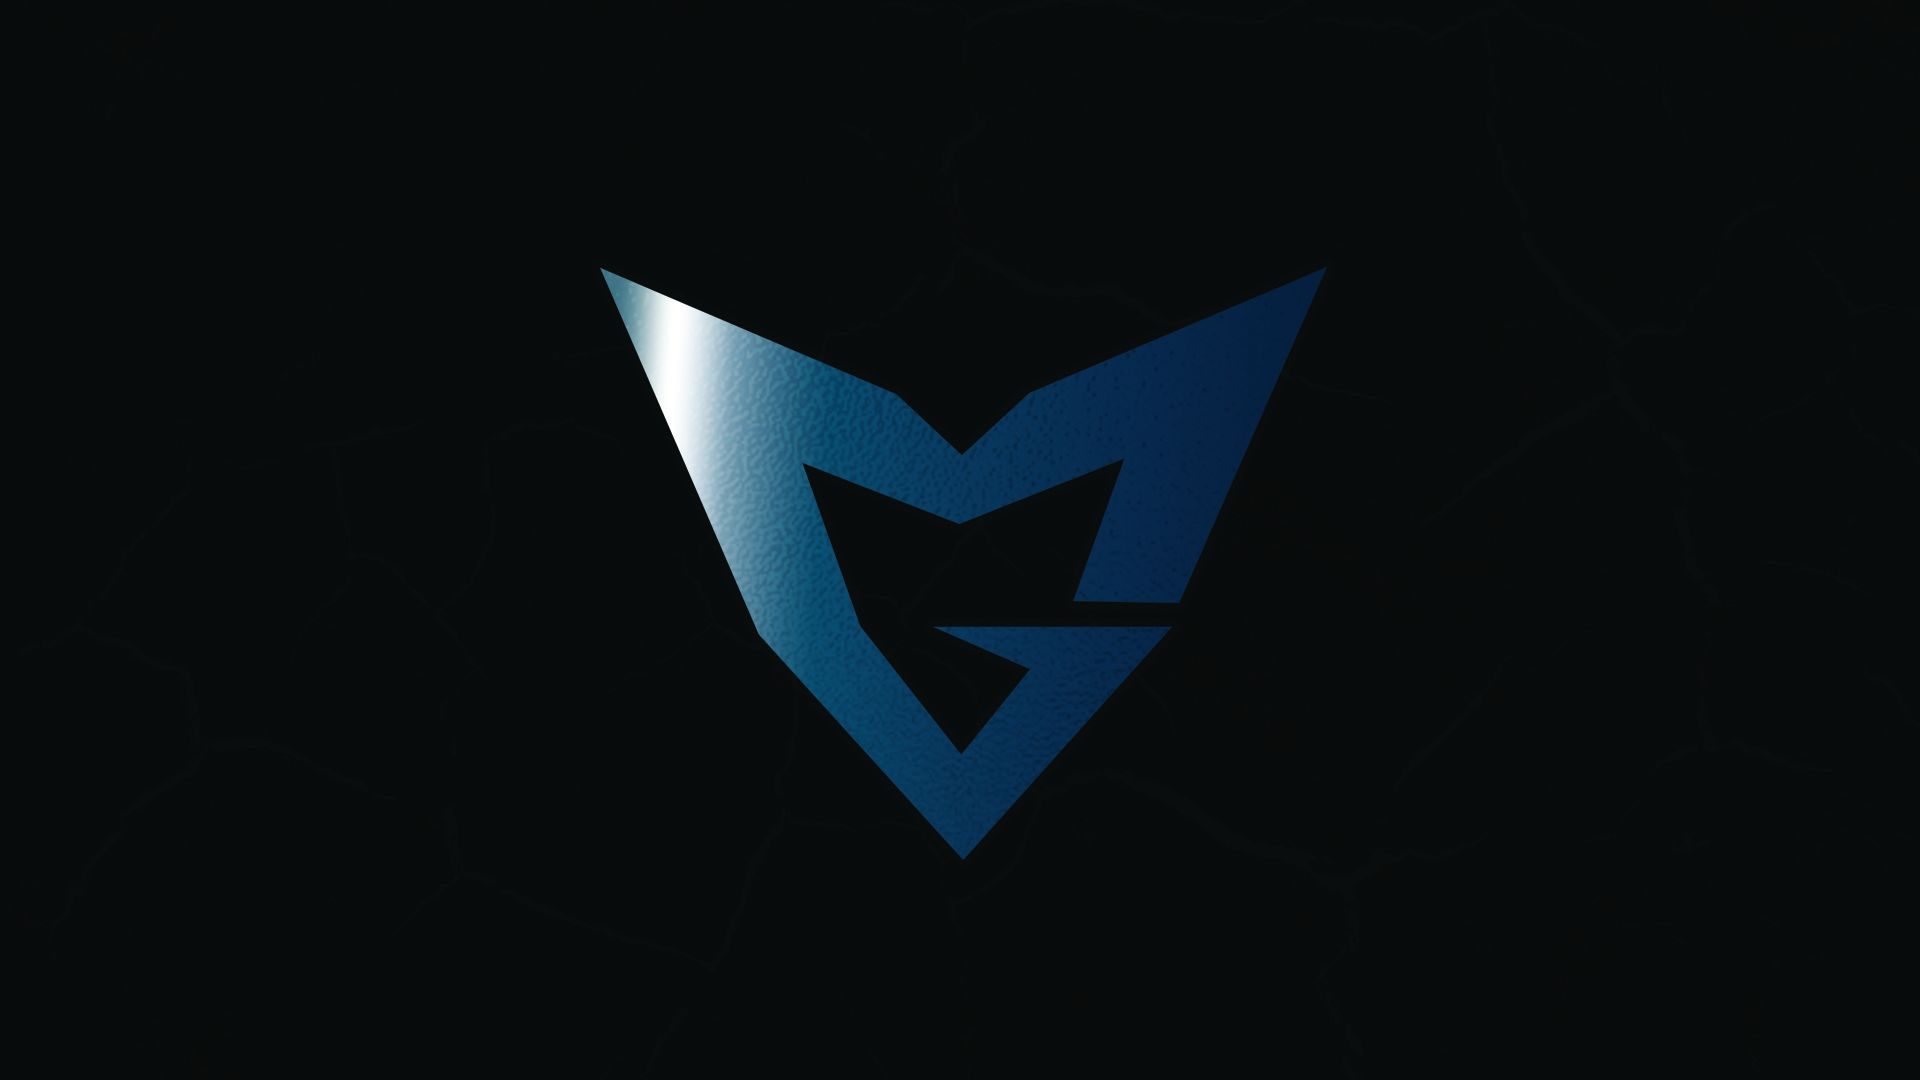 Cool wallpapers for the competing lcs teams bc gb - Gaming logo wallpaper ...